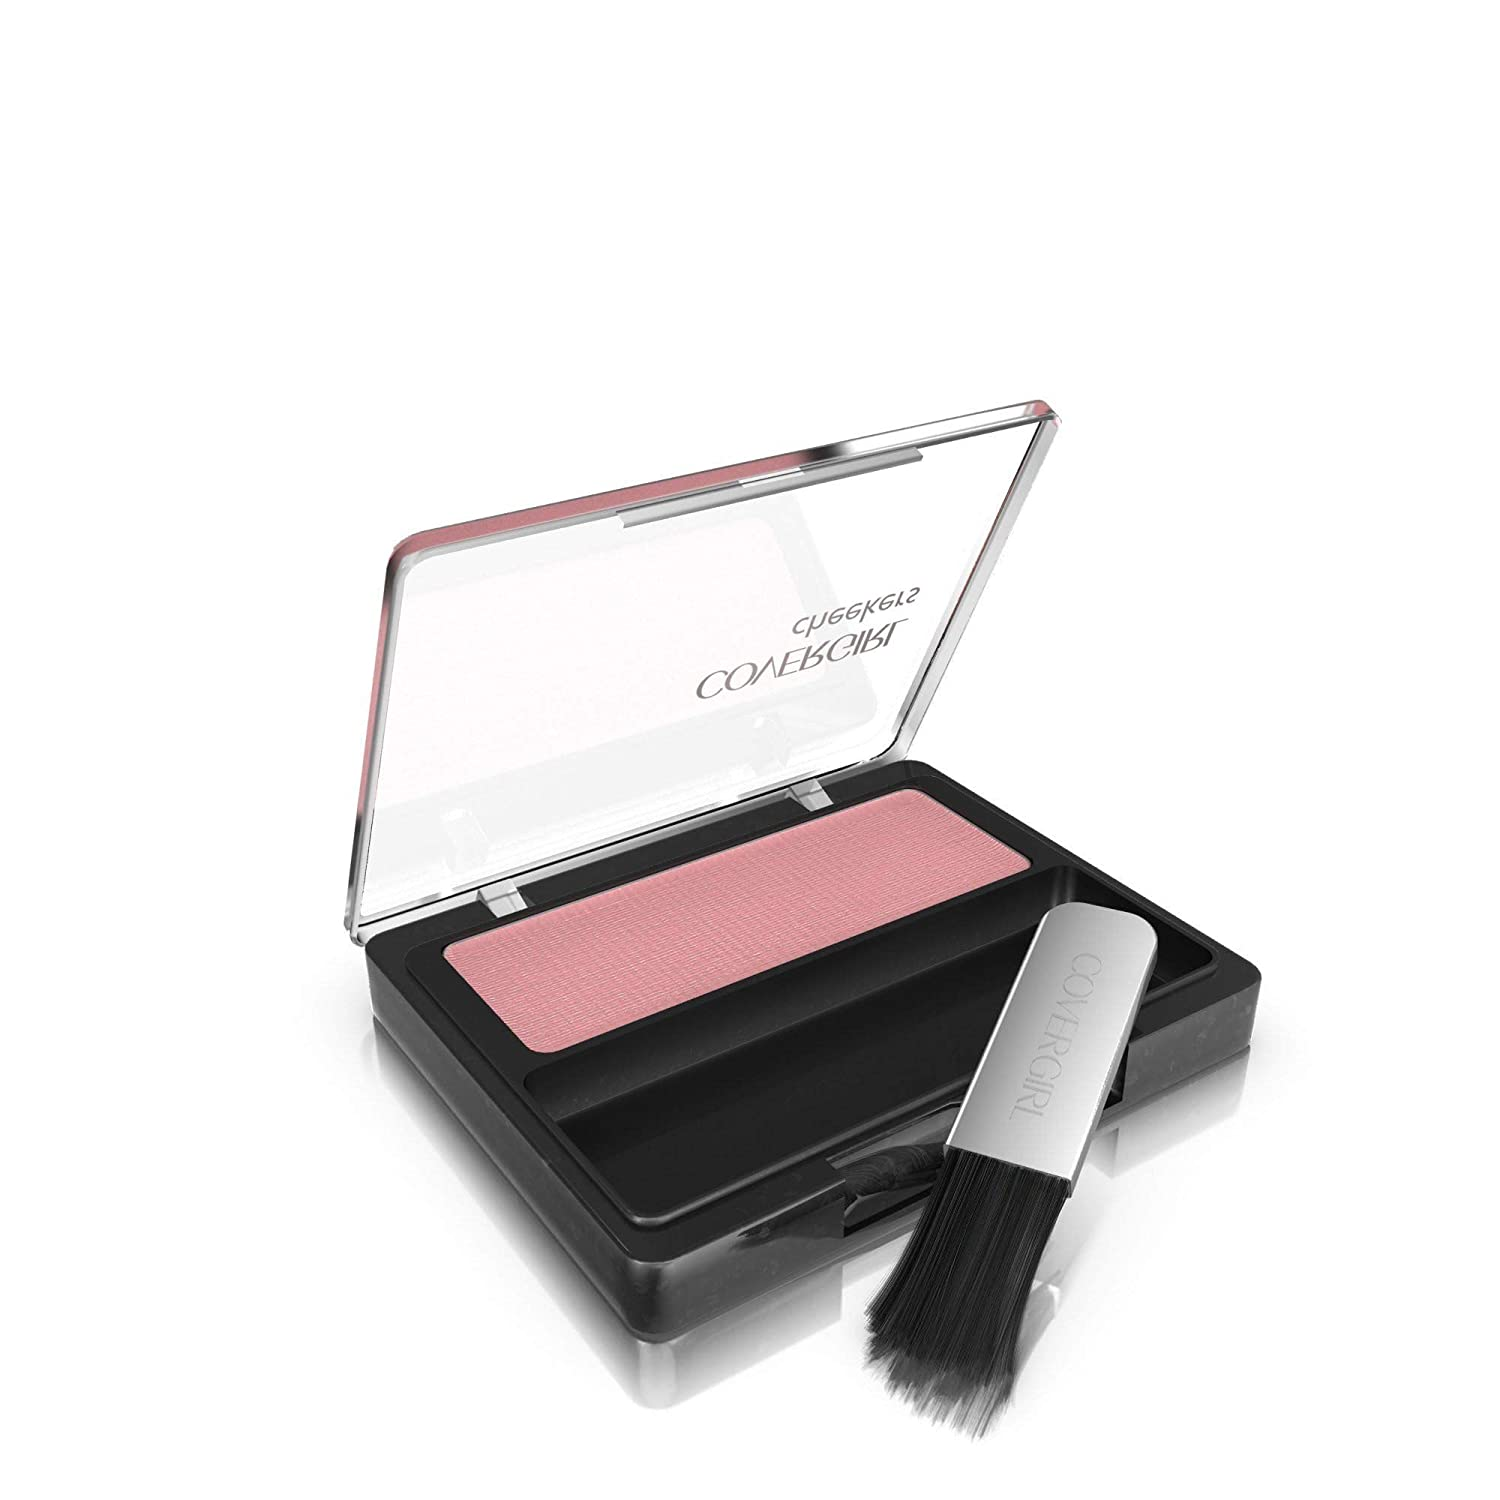 COVERGIRL Cheekers Blendable Powder Blush Rose Silk, .12 oz (packaging may vary), 1 Count